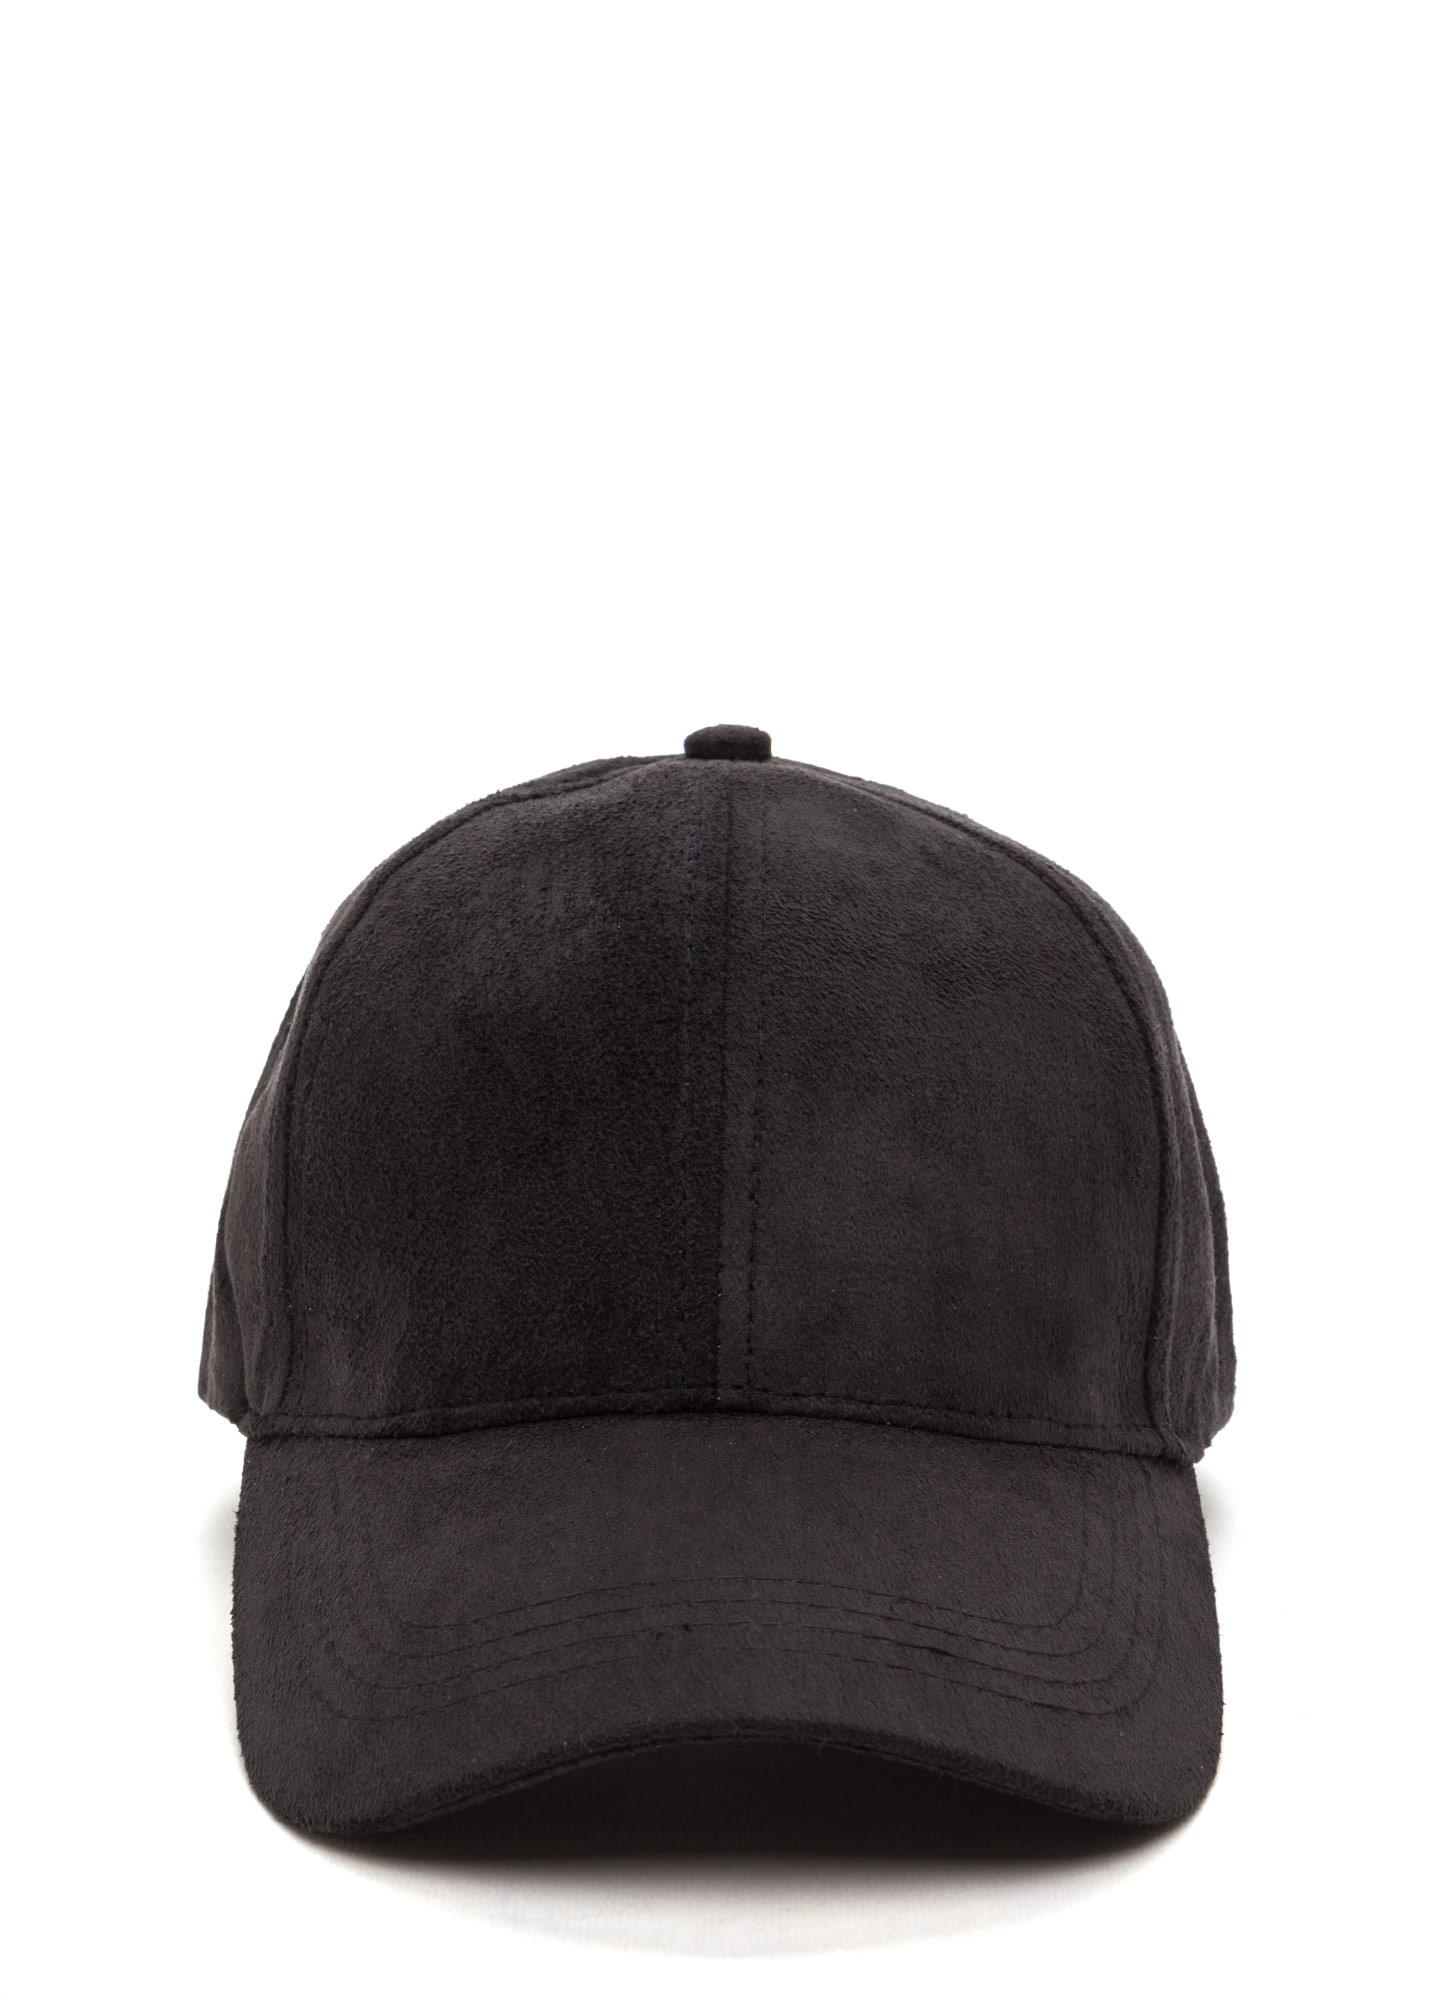 Real Player Faux Suede Baseball Cap BLACK (Final Sale)